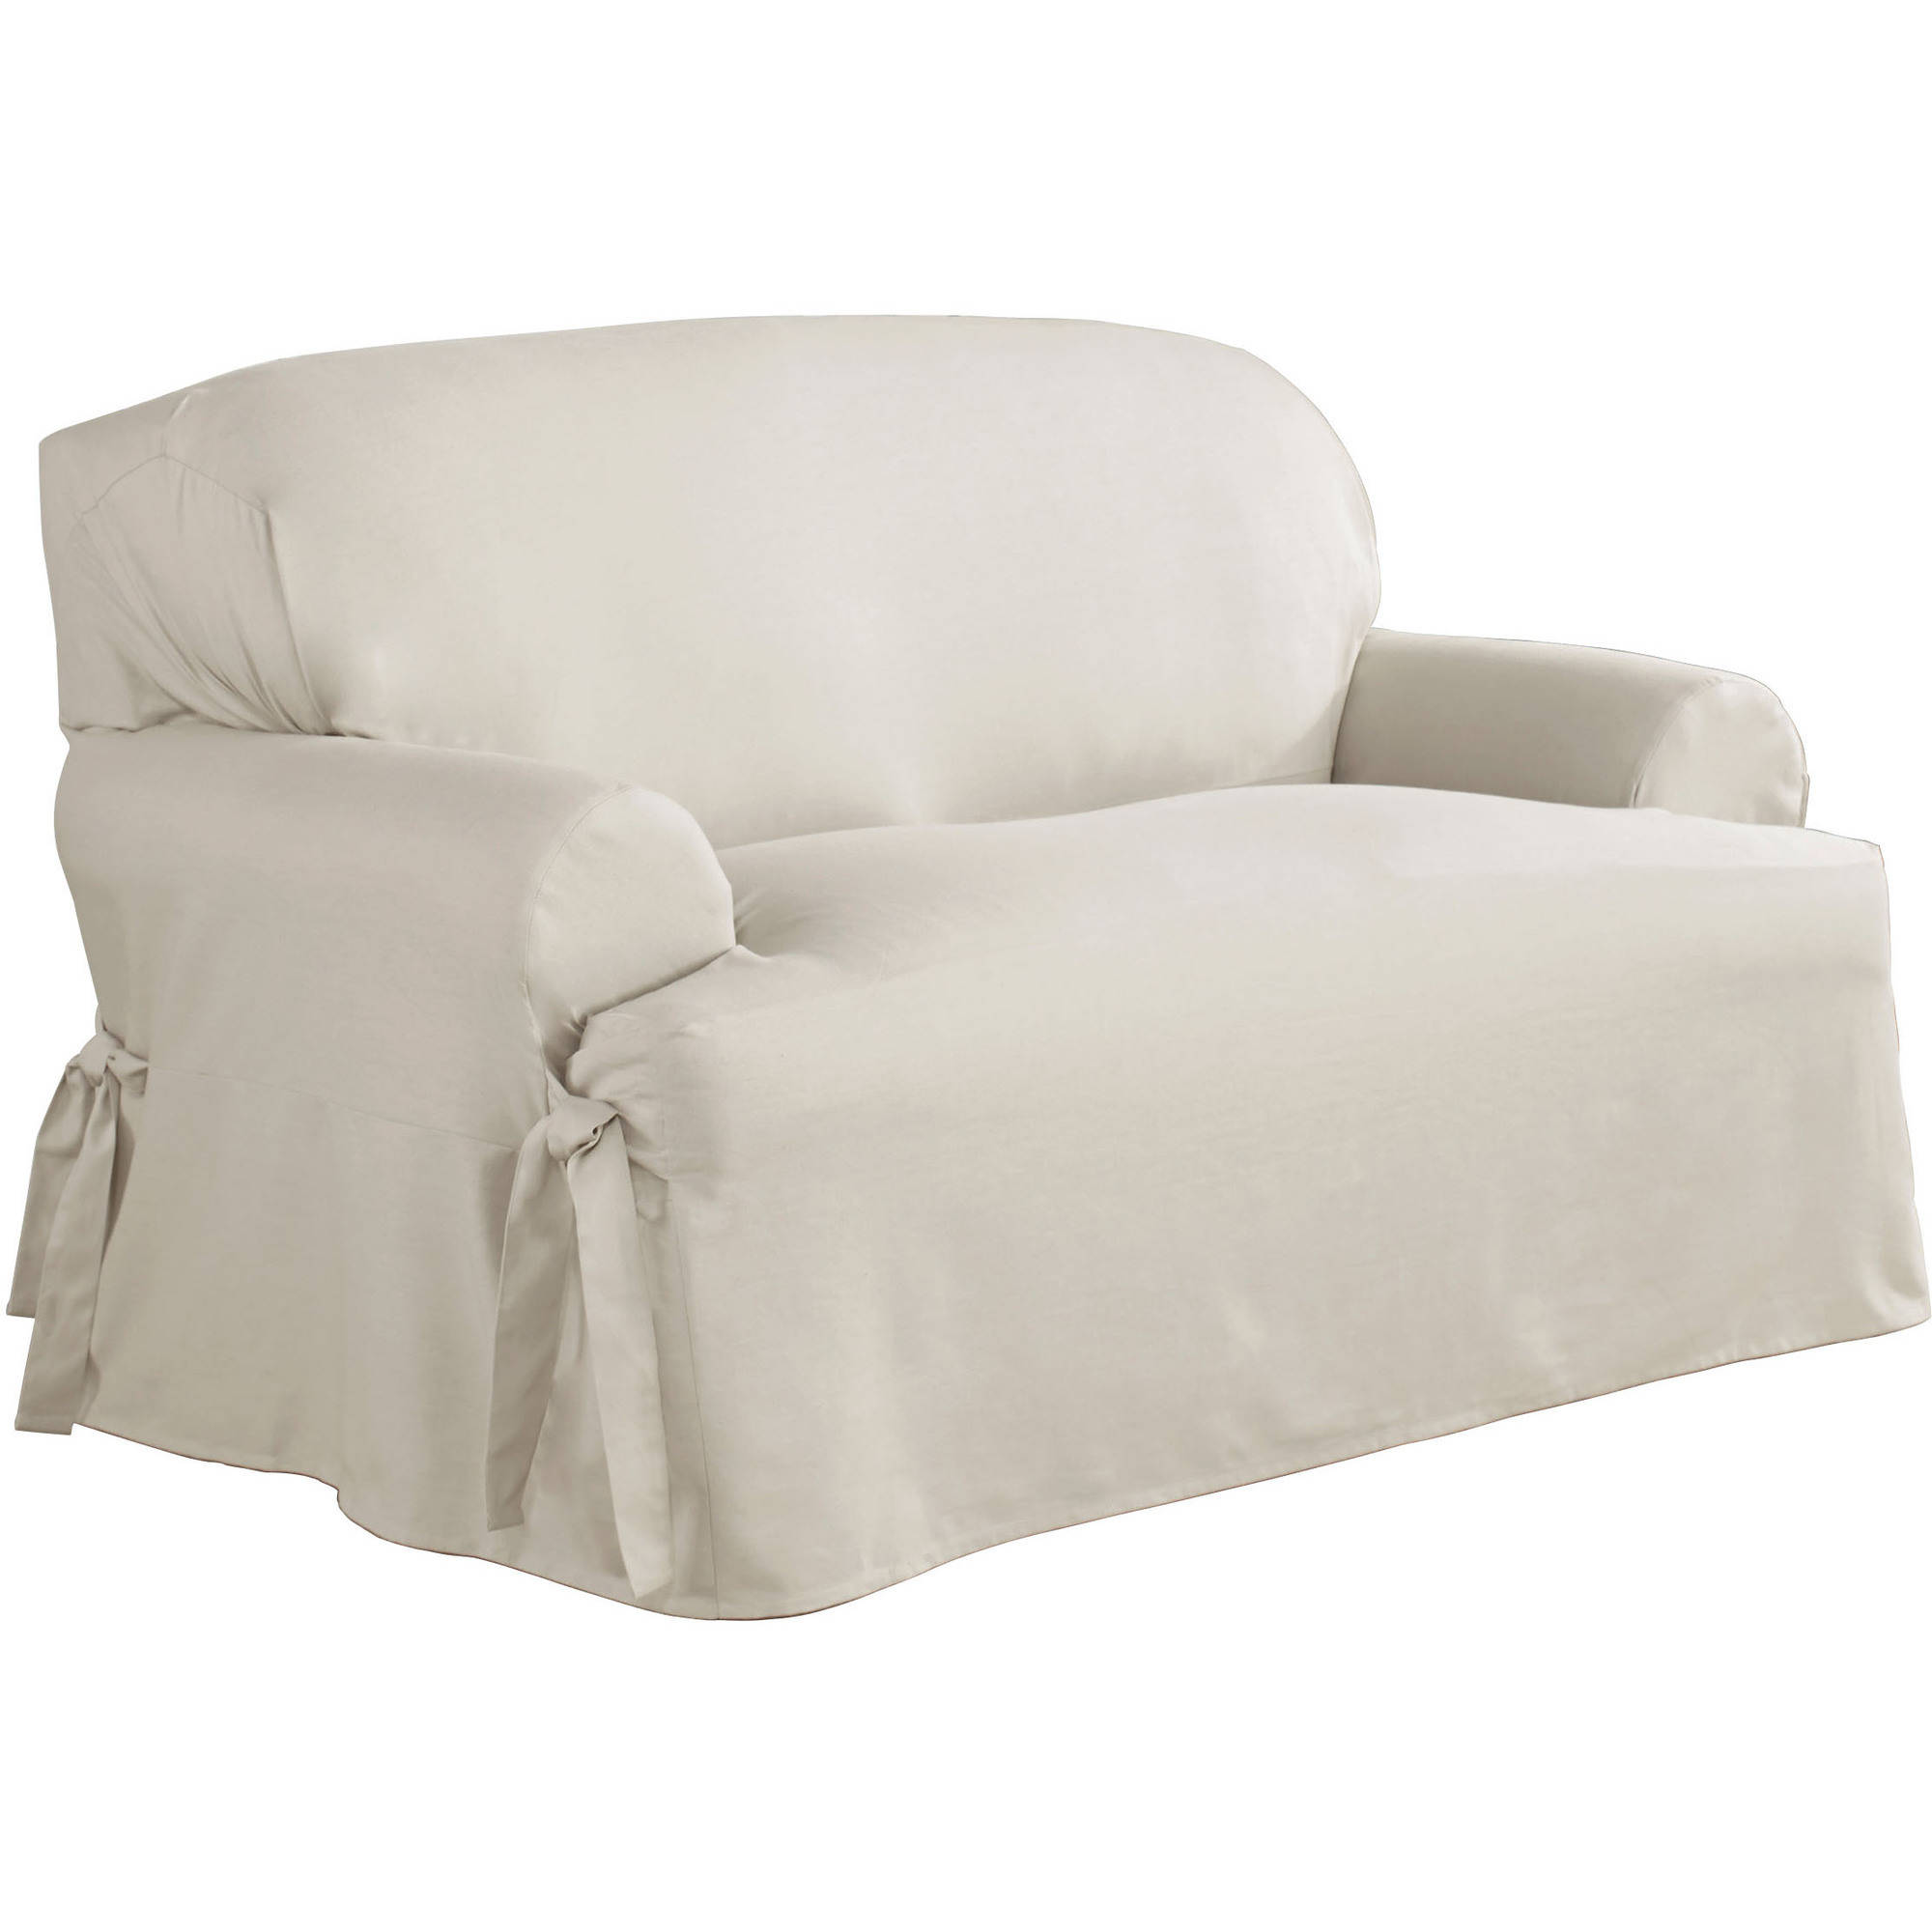 T Cushion Sofa Slipcovers 3 Piece | T Cushion Sofa Slipcover | Slipcovers for Loveseats with 2 Cushions